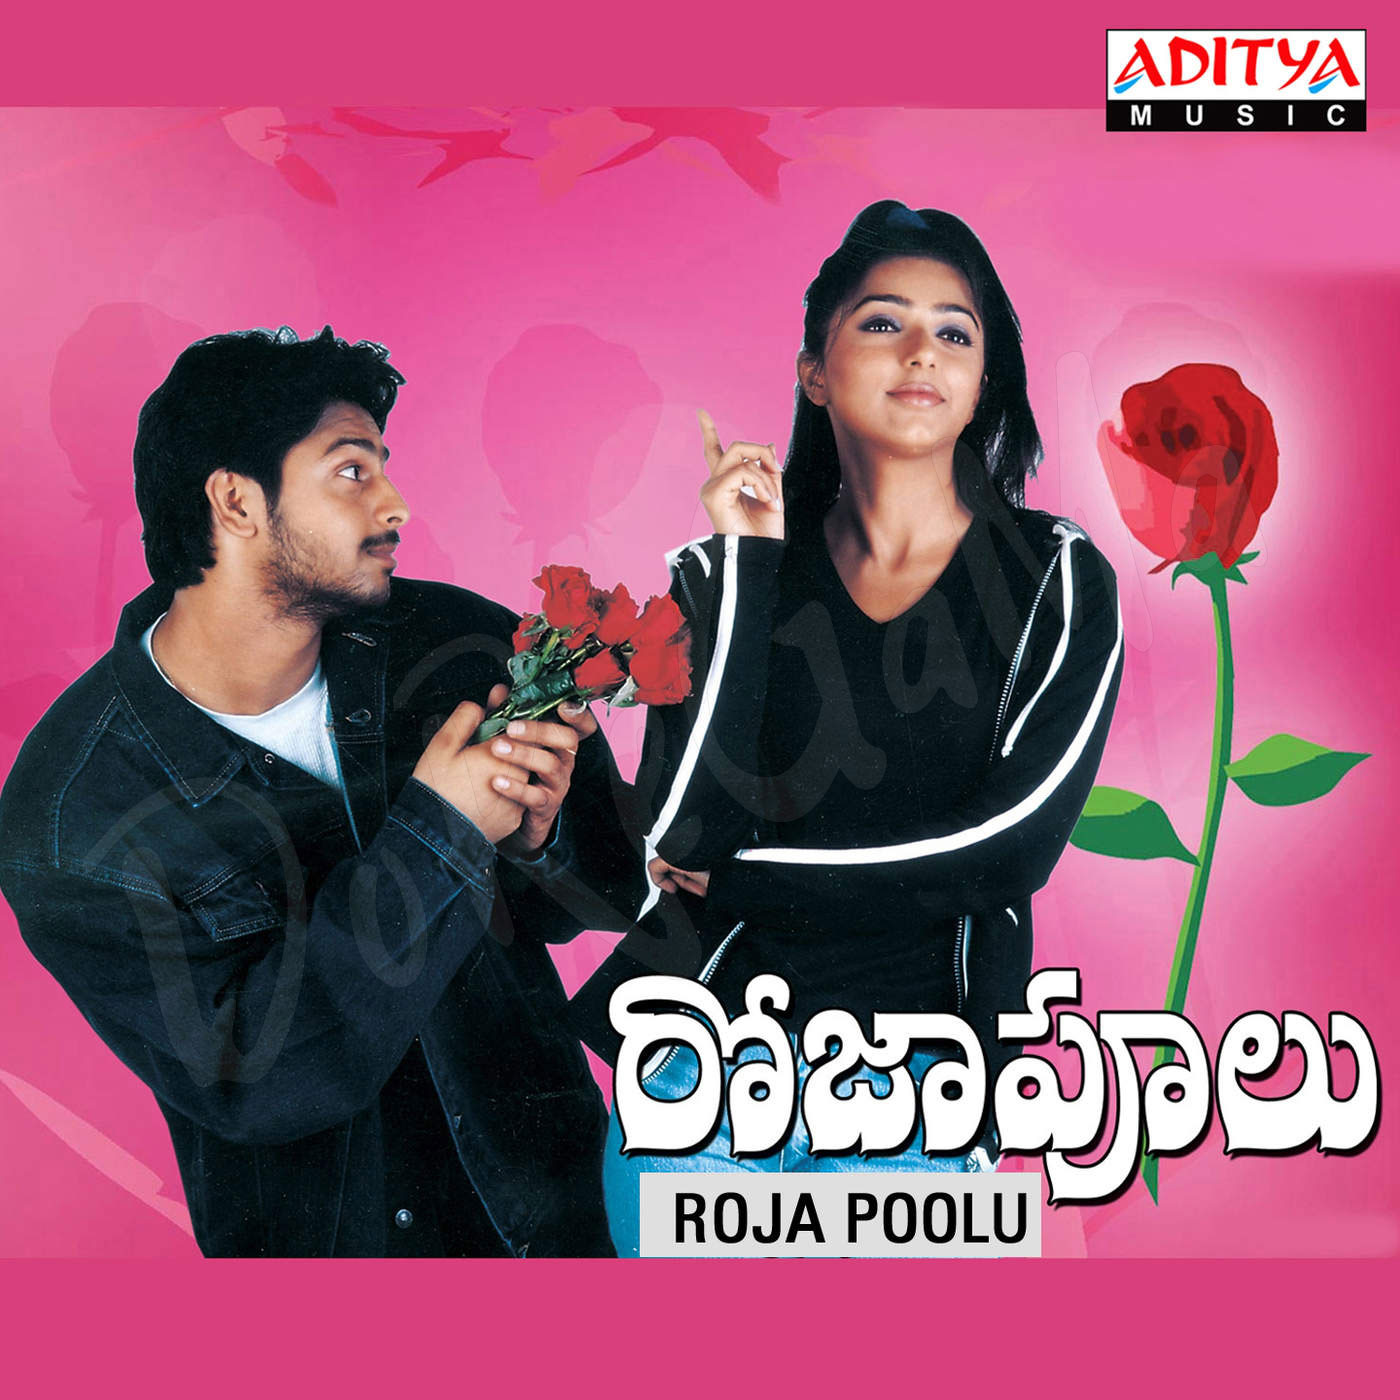 Roja-Poolu-2002-Original-CD-Front-Cover-HD